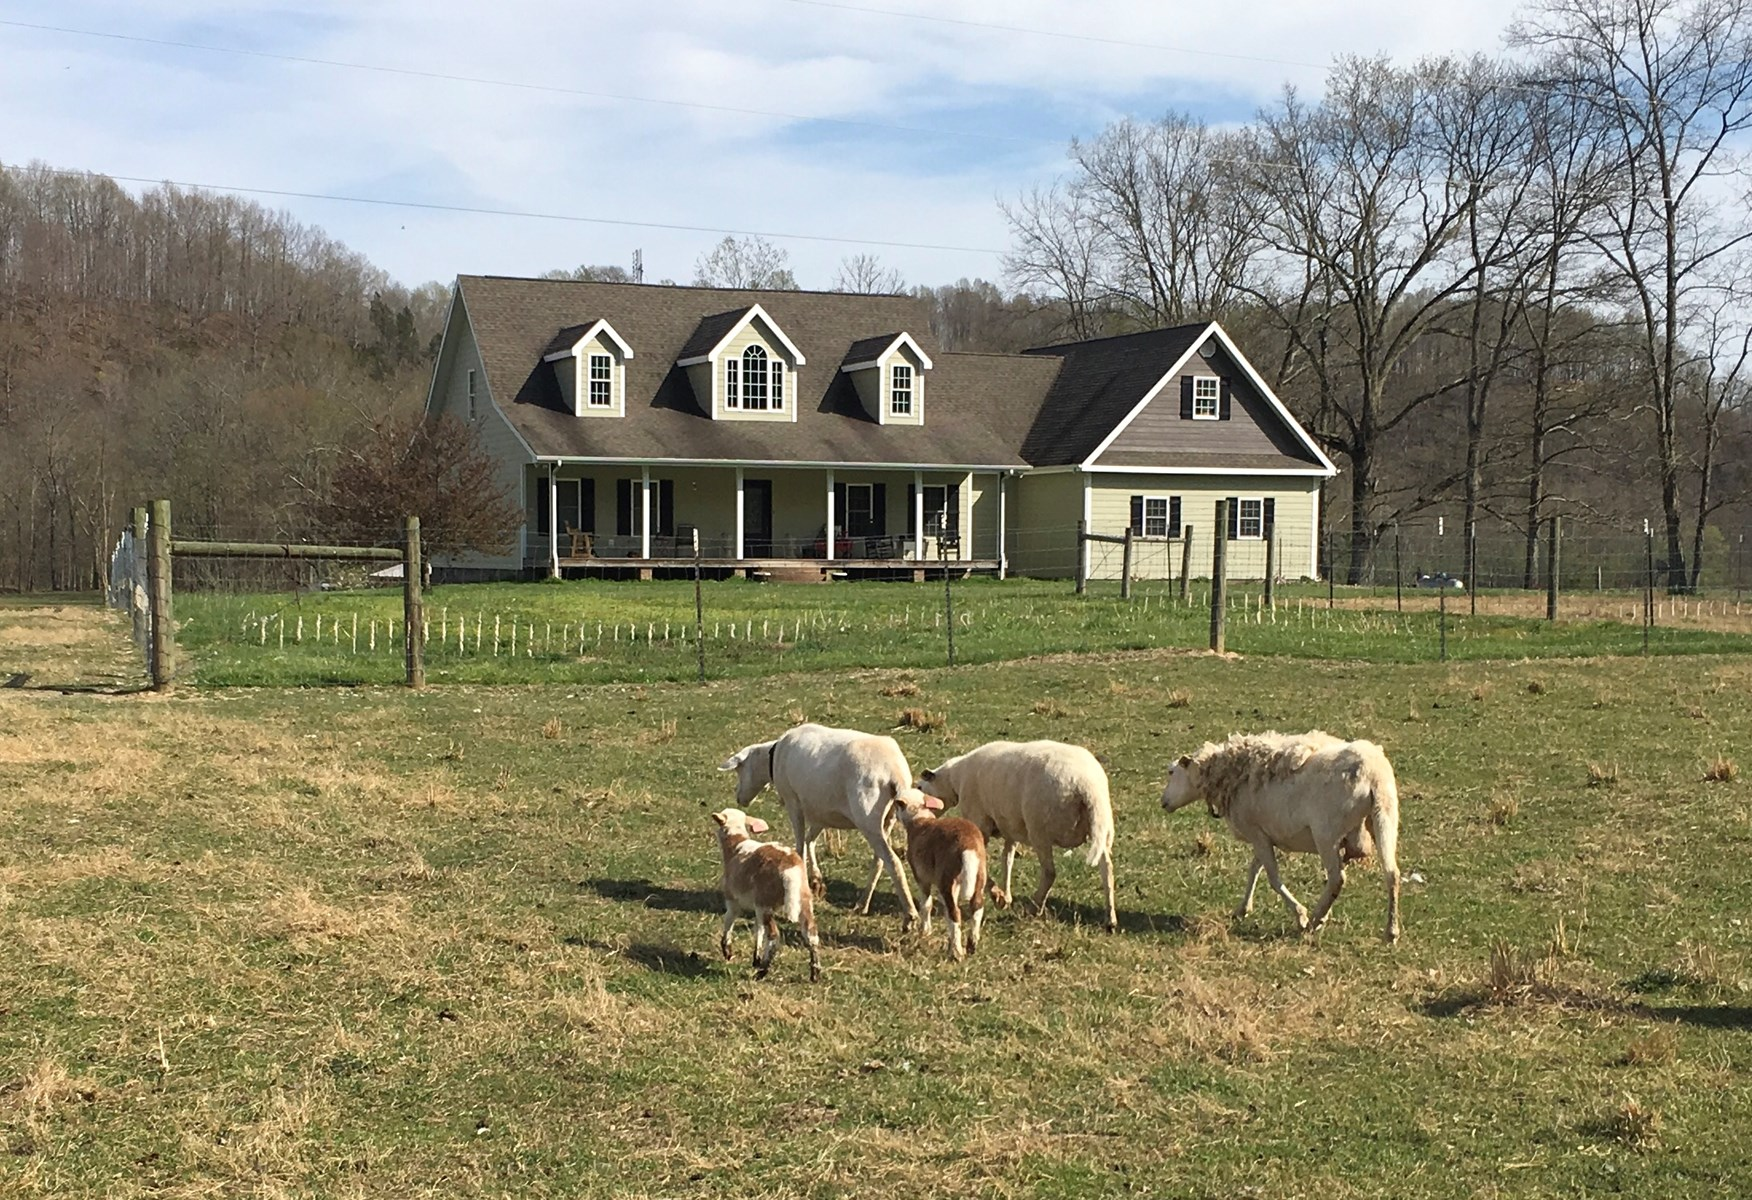 CUSTOM HOME ON 7.7+/- ACRES / HOBBY FARM-BARN - LIBERTY KY.